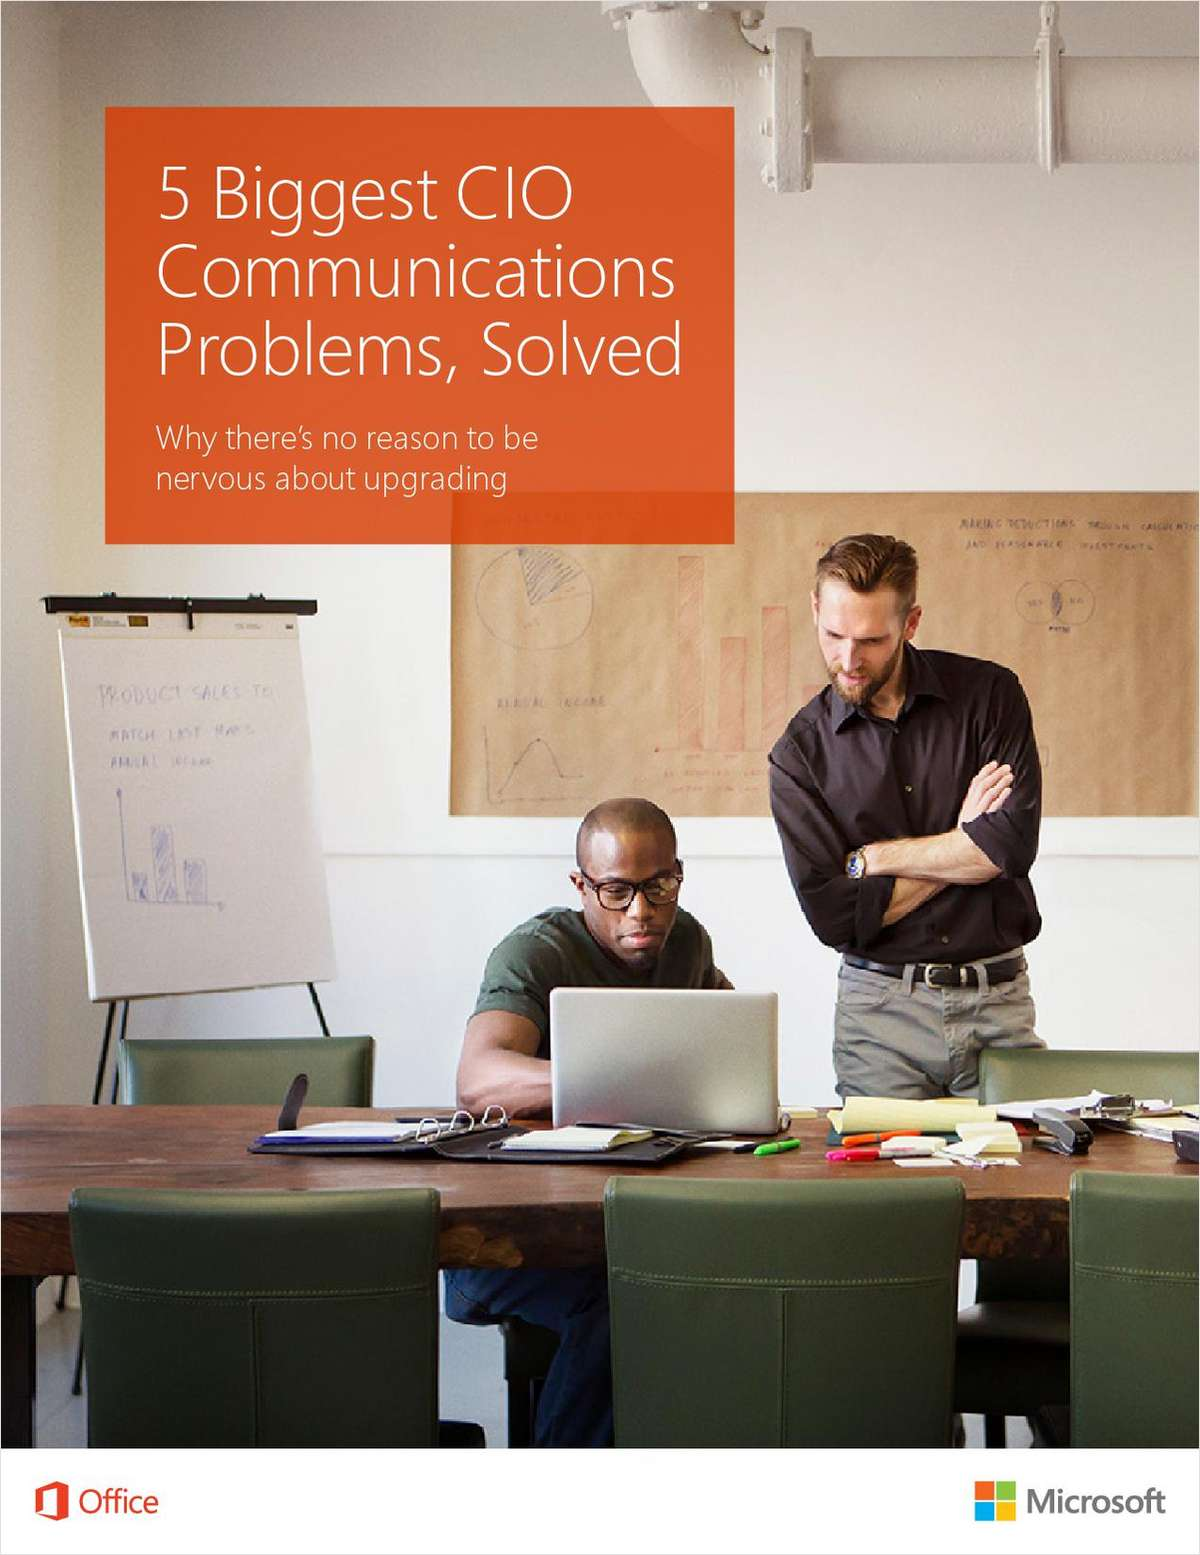 How CIOs Can Solve Their 5 Biggest Communications Problems